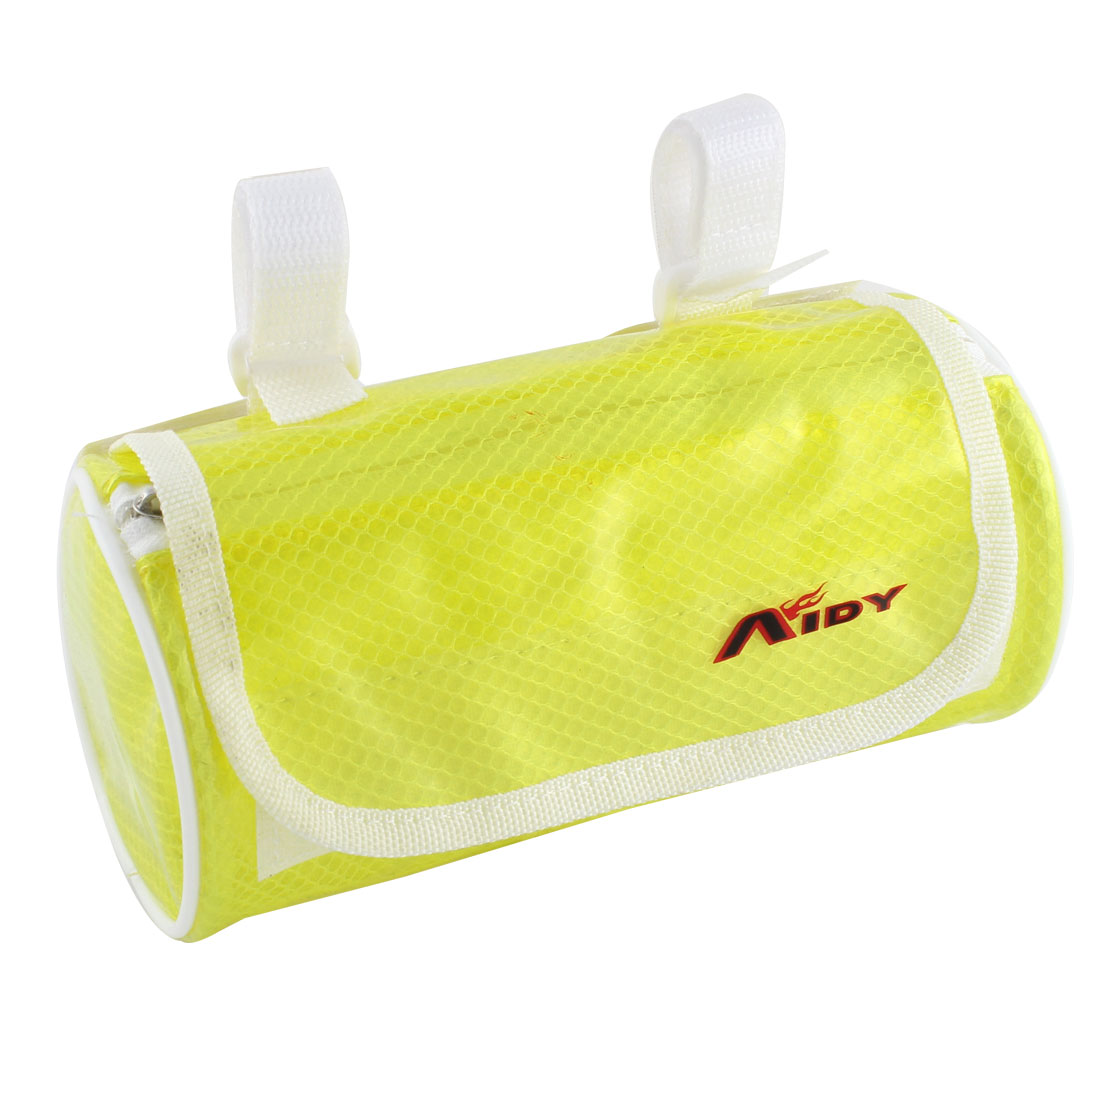 Cycling Bike Bicycle Front Pannier Basket Water Resistant Handlebar Bar Pouch Bag Clear Yellow